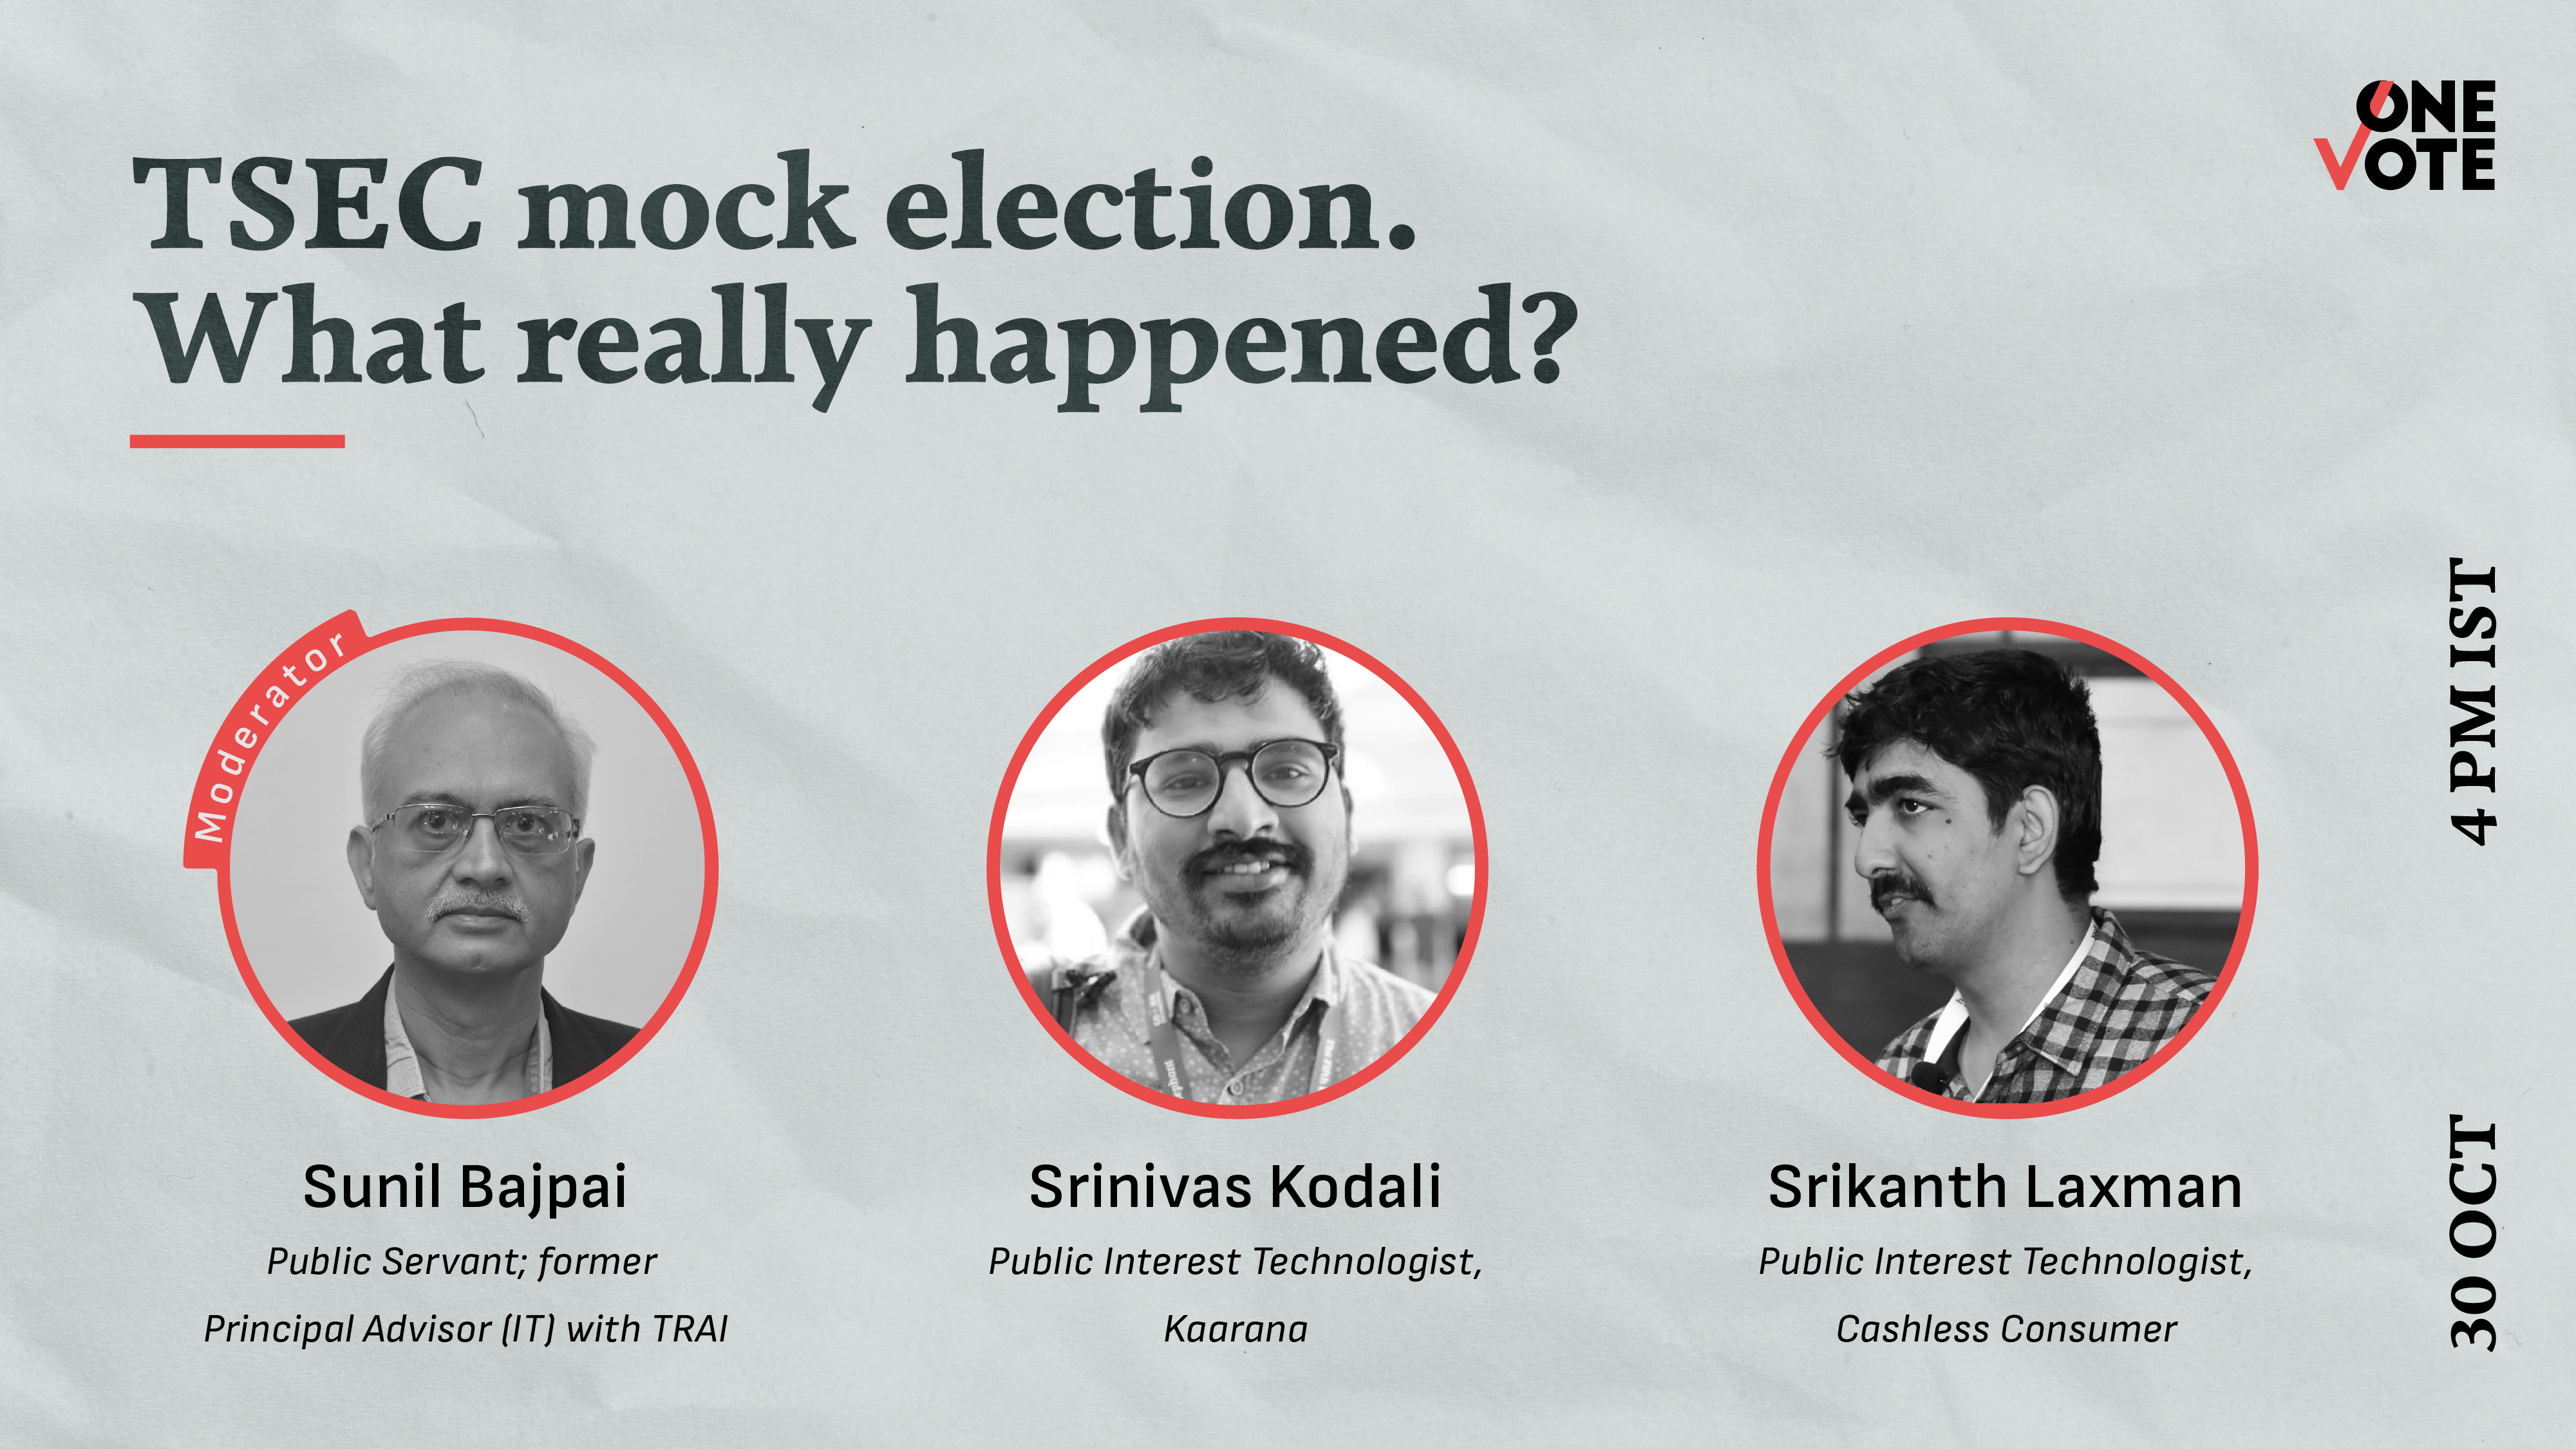 What really happened in the mock election conducted by the Telangana State Election Commission (TSEC)